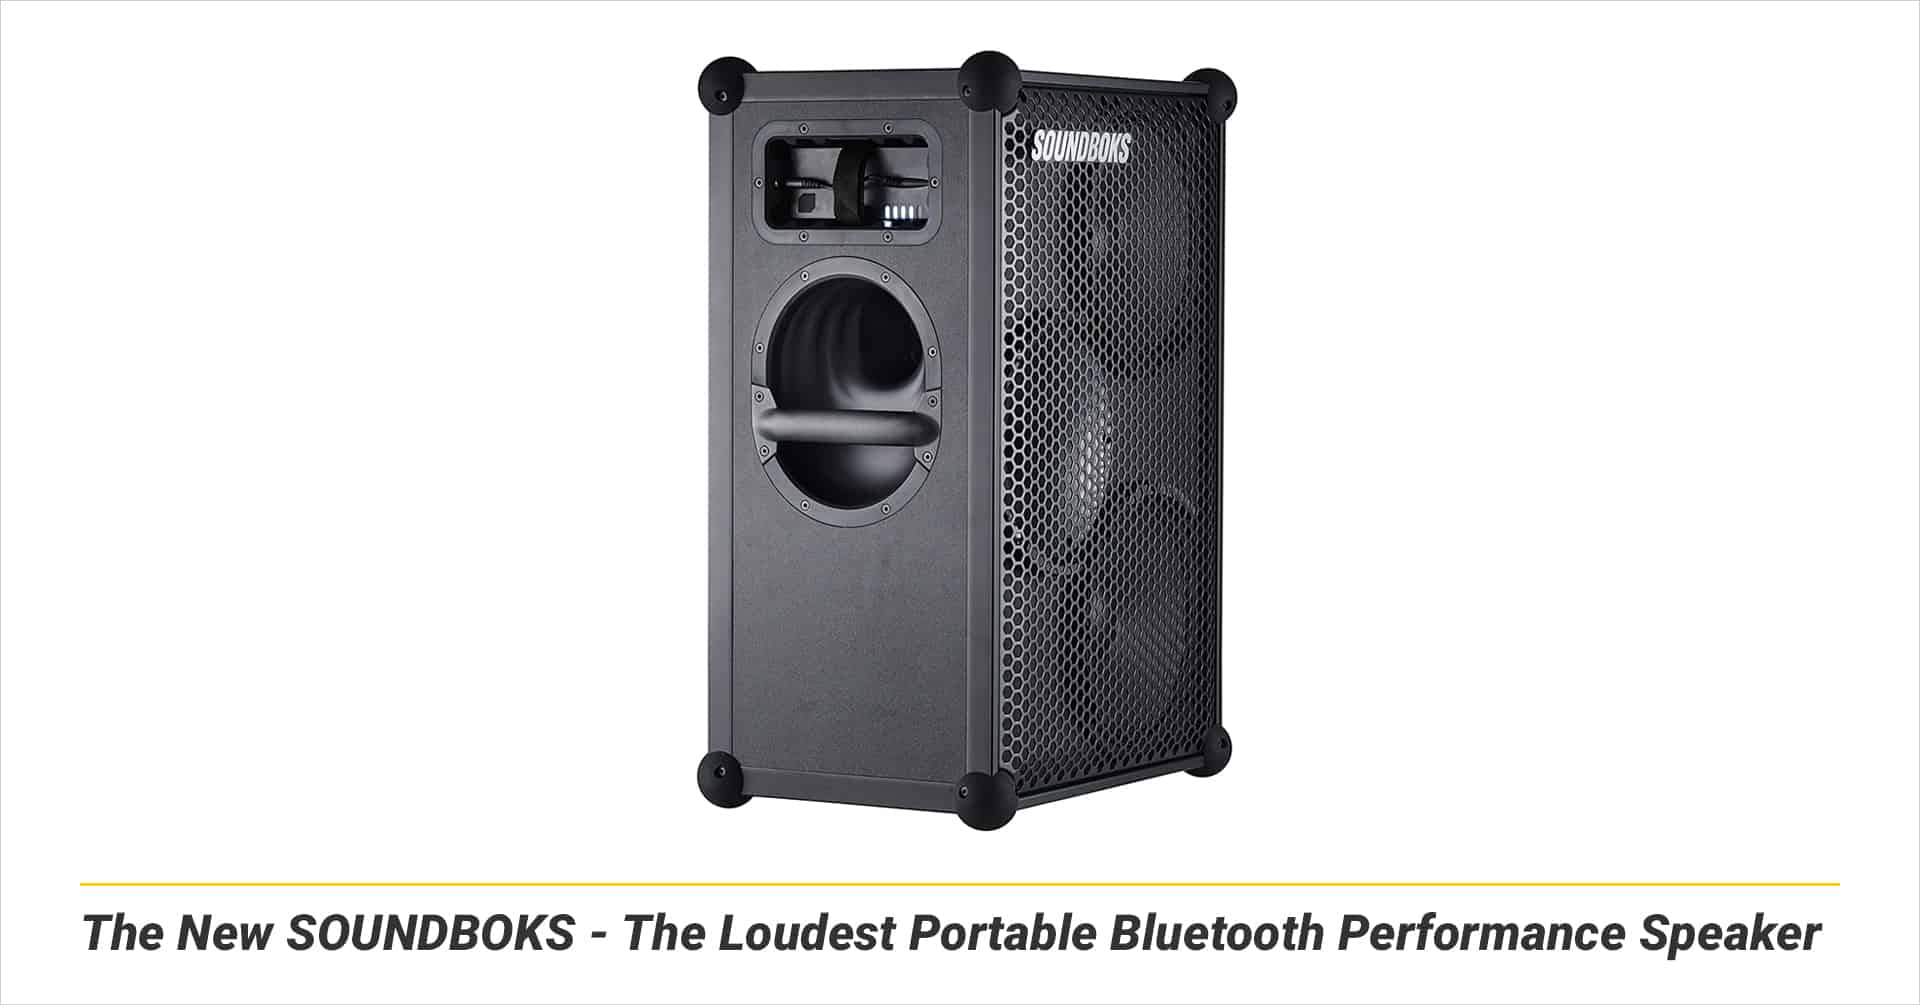 The New SOUNDBOKS - The Loudest Portable Bluetooth Performance Speaker